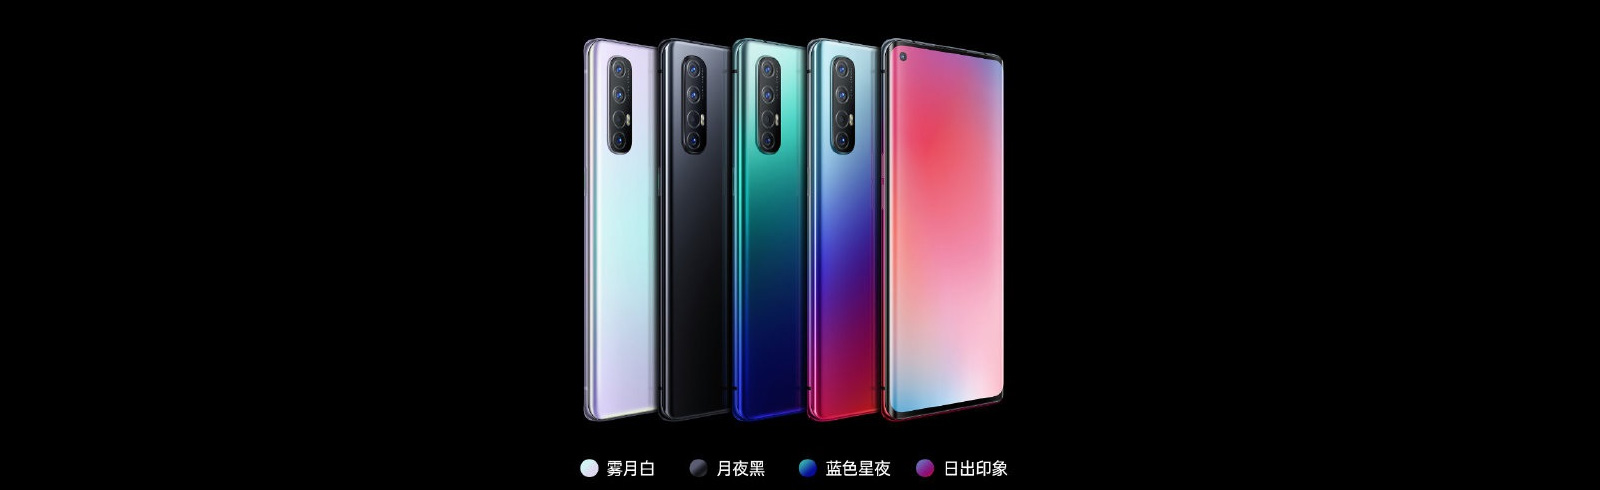 Oppo Reno3 and Oppo Reno3 Pro 5G go official and will go on sale on December 31